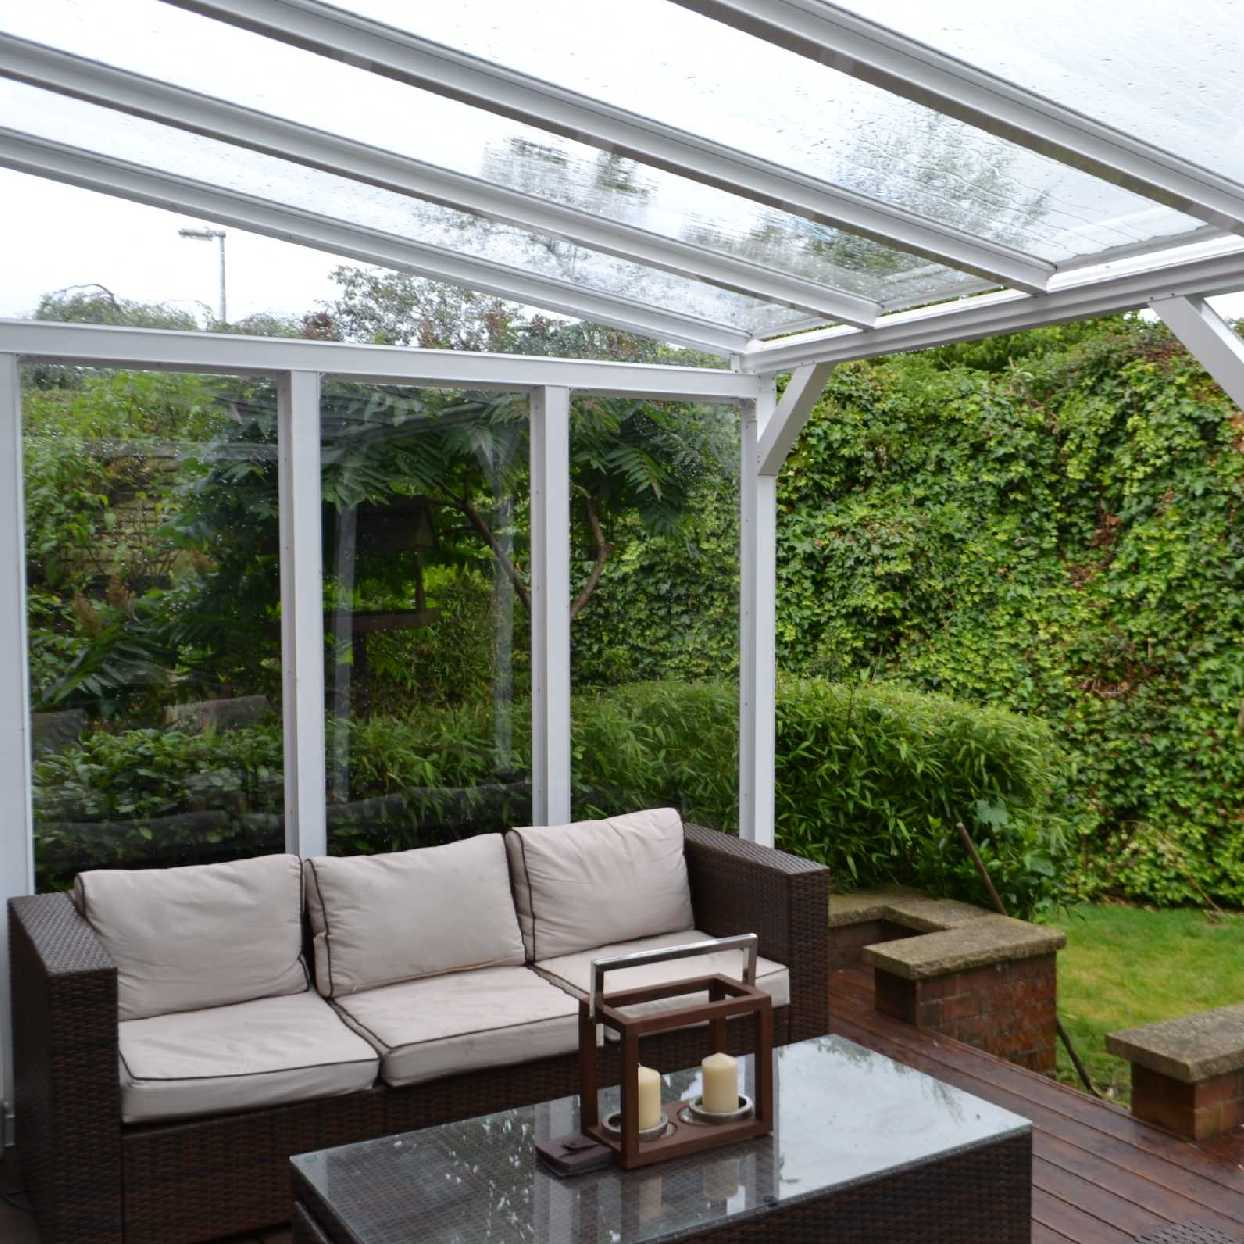 Omega Smart Lean-To Canopy with 6mm Glass Clear Plate Polycarbonate Glazing - 4.9m (W) x 2.0m (P), (3) Supporting Posts